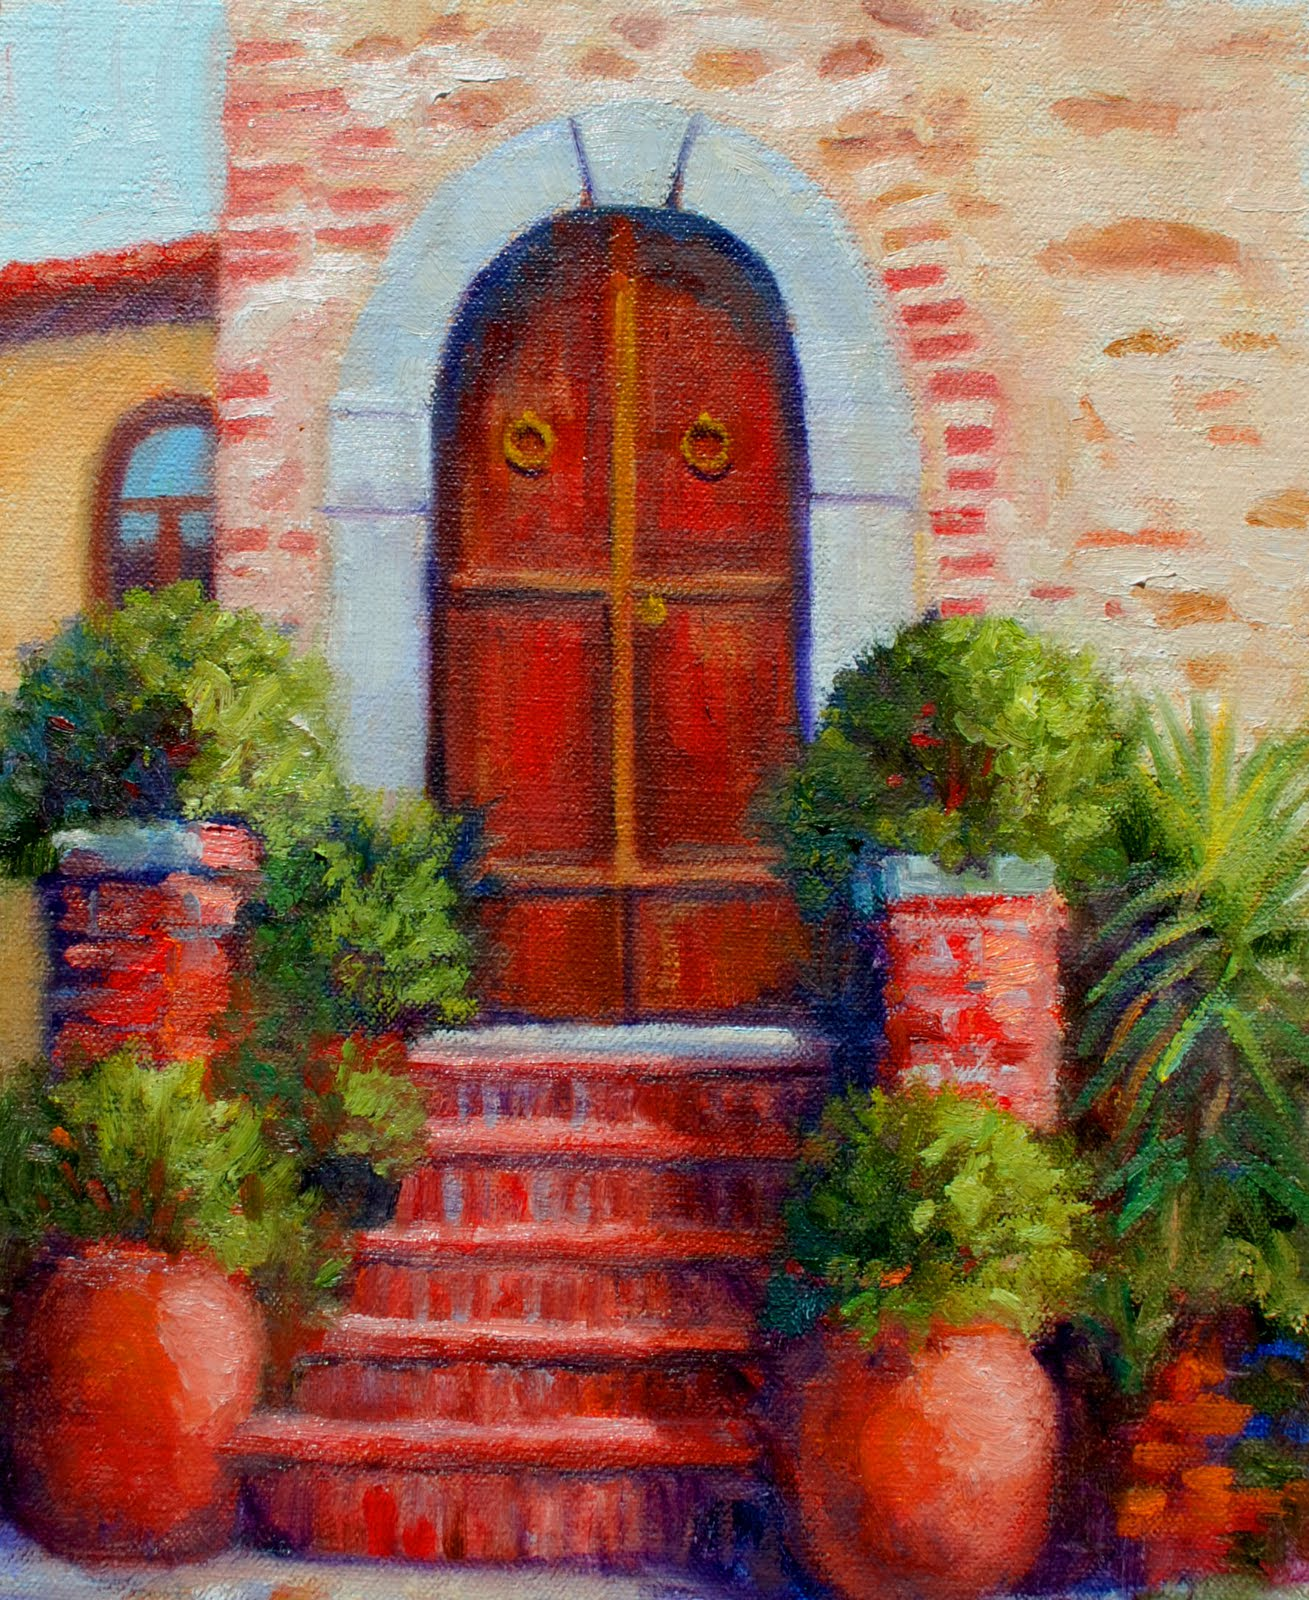 Opportunity Knocks. Tuscan Door & European and Southern Paintings by Durinda: Opportunity Knocks